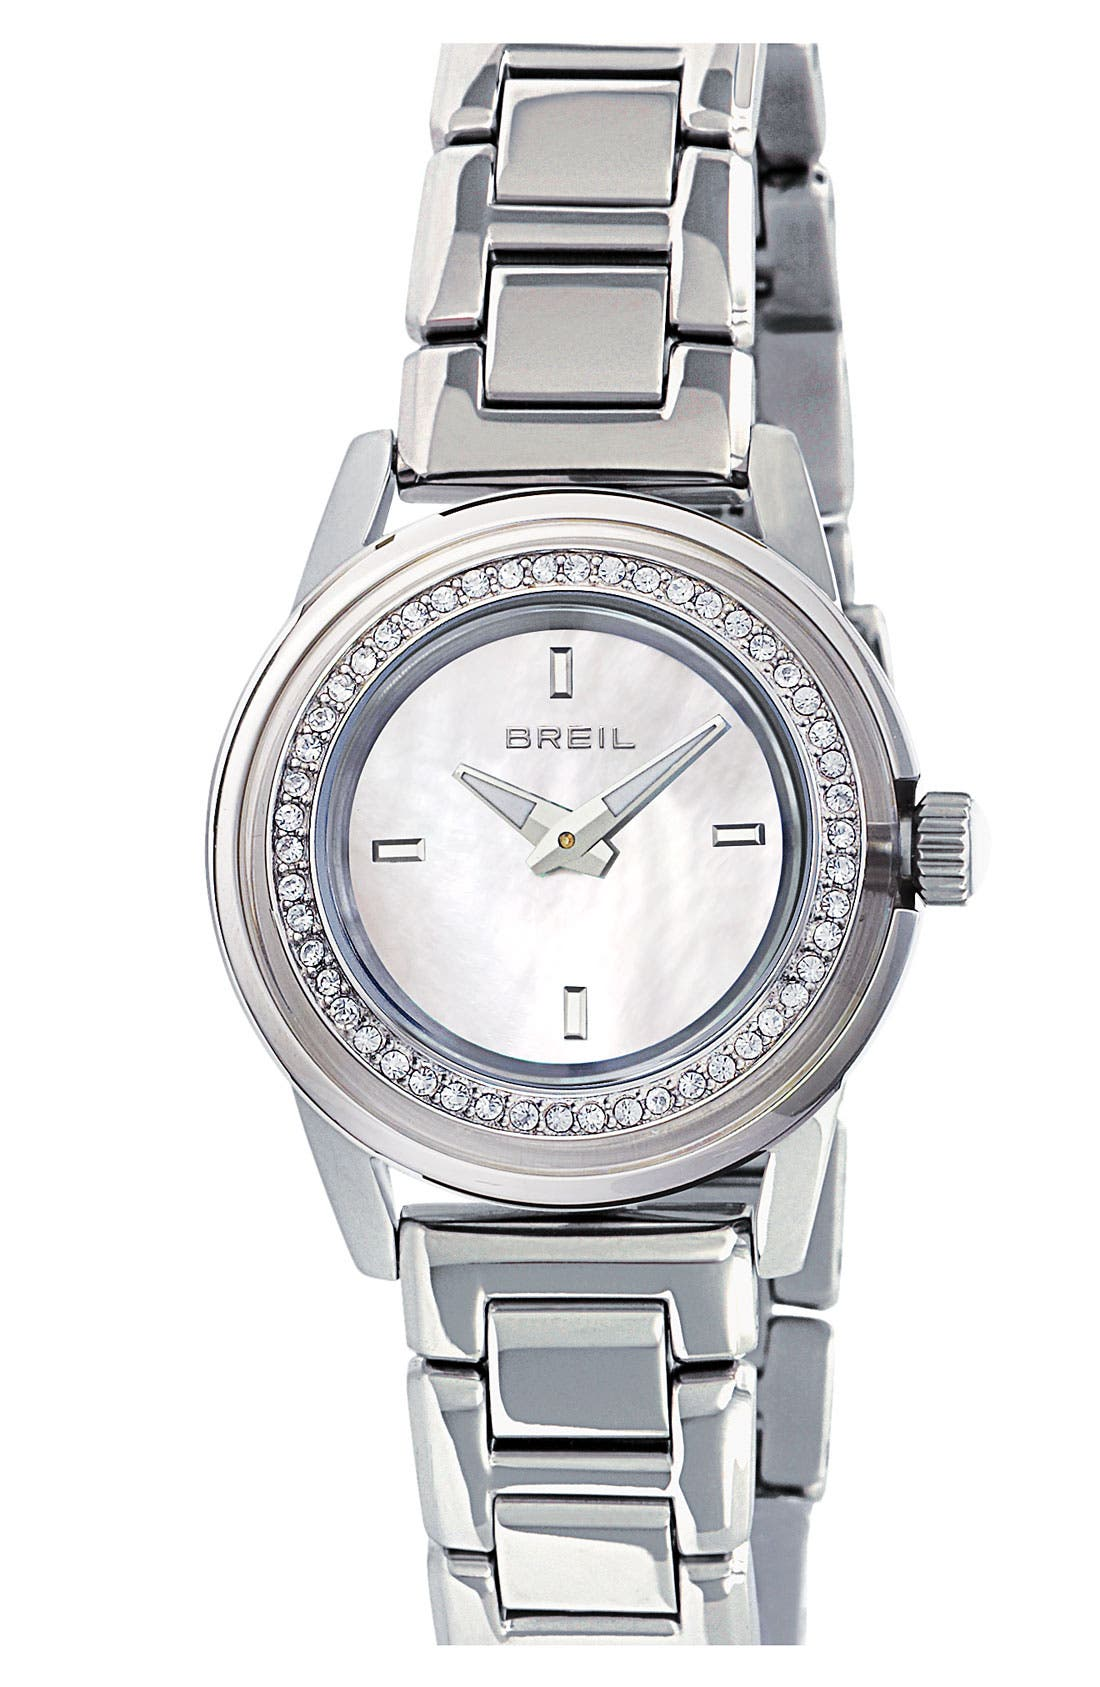 Main Image - Breil 'Orchestra' Crystal Bezel Bracelet Watch. 28mm